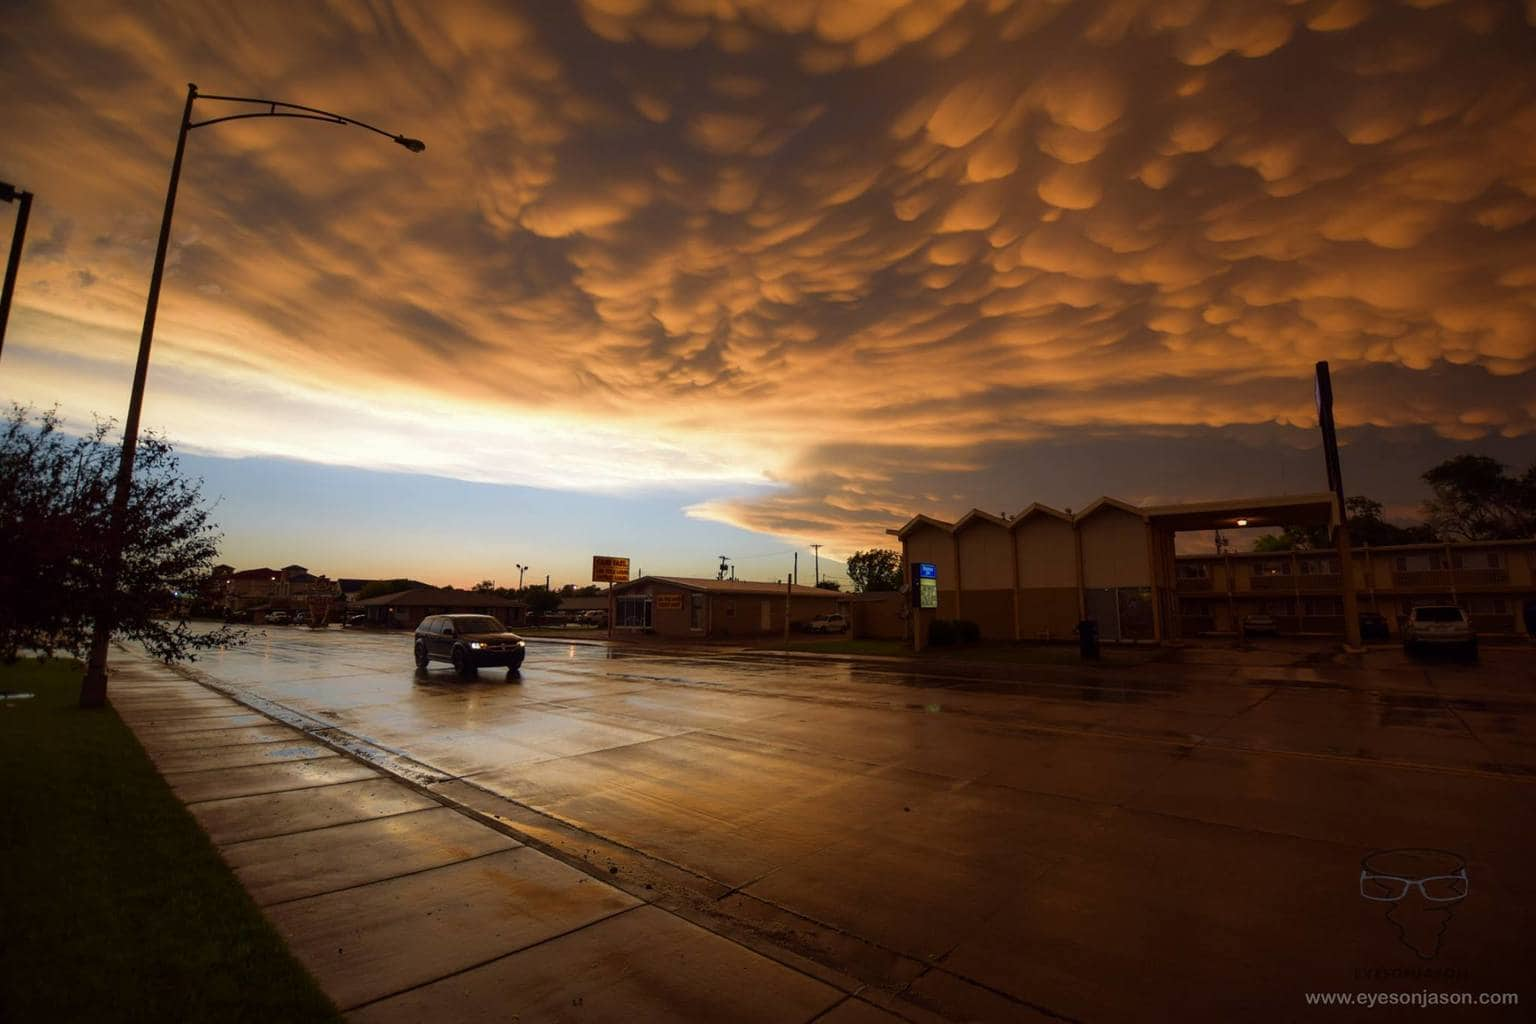 A mammatus sunset on a dramatic day chasing the Dodge City Storm on May 24th 2016. This was taken whilst waiting to enter a steak house, of which had suffered a power-outage from the storm. A video of our chase can be found on my website (in watermark) or on Youtube channel eyesonjason